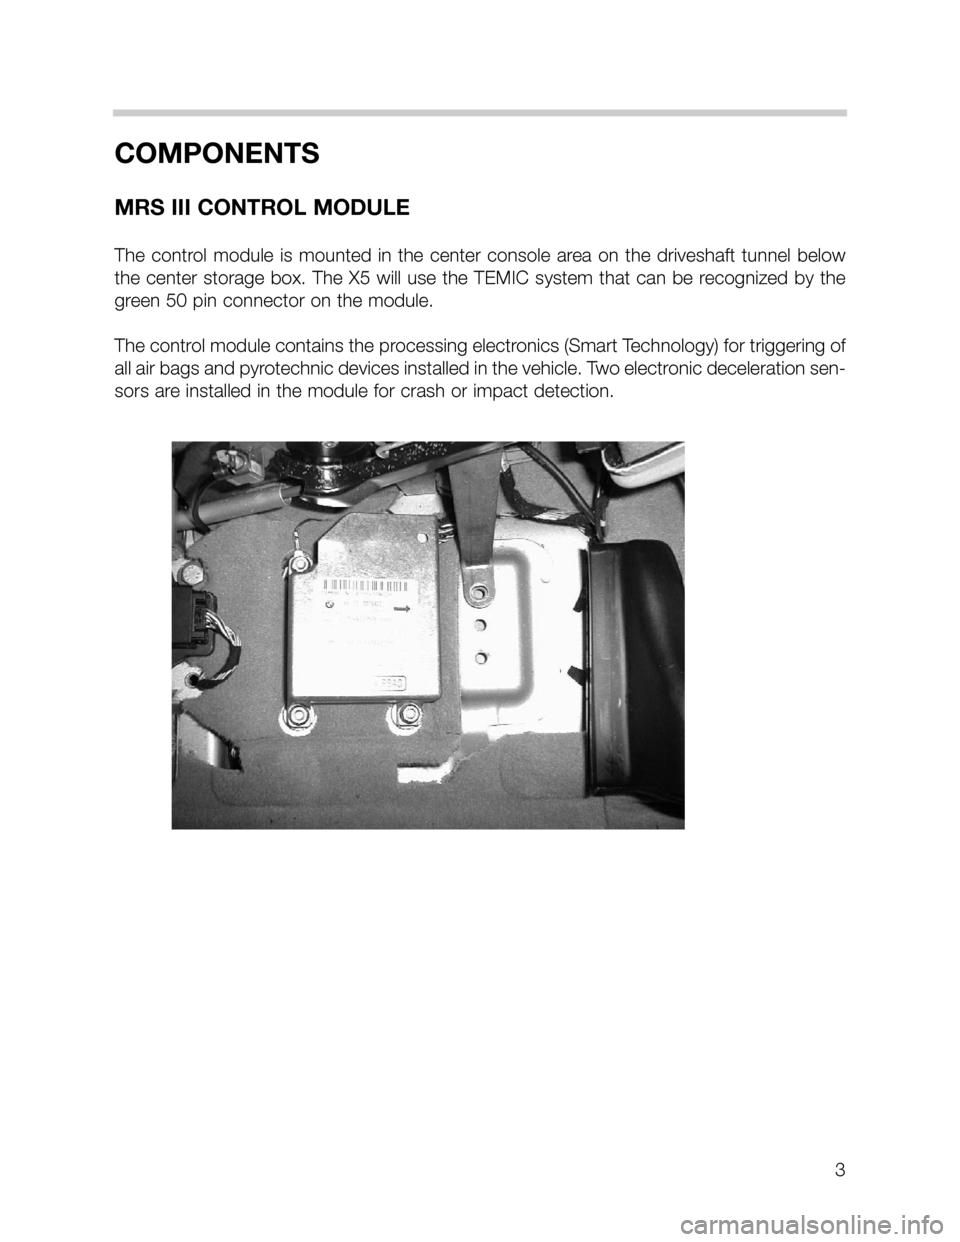 BMW 3 SERIES SEDAN 2003 E46 MRSIII Multiple Restraint System Manual, Page 3